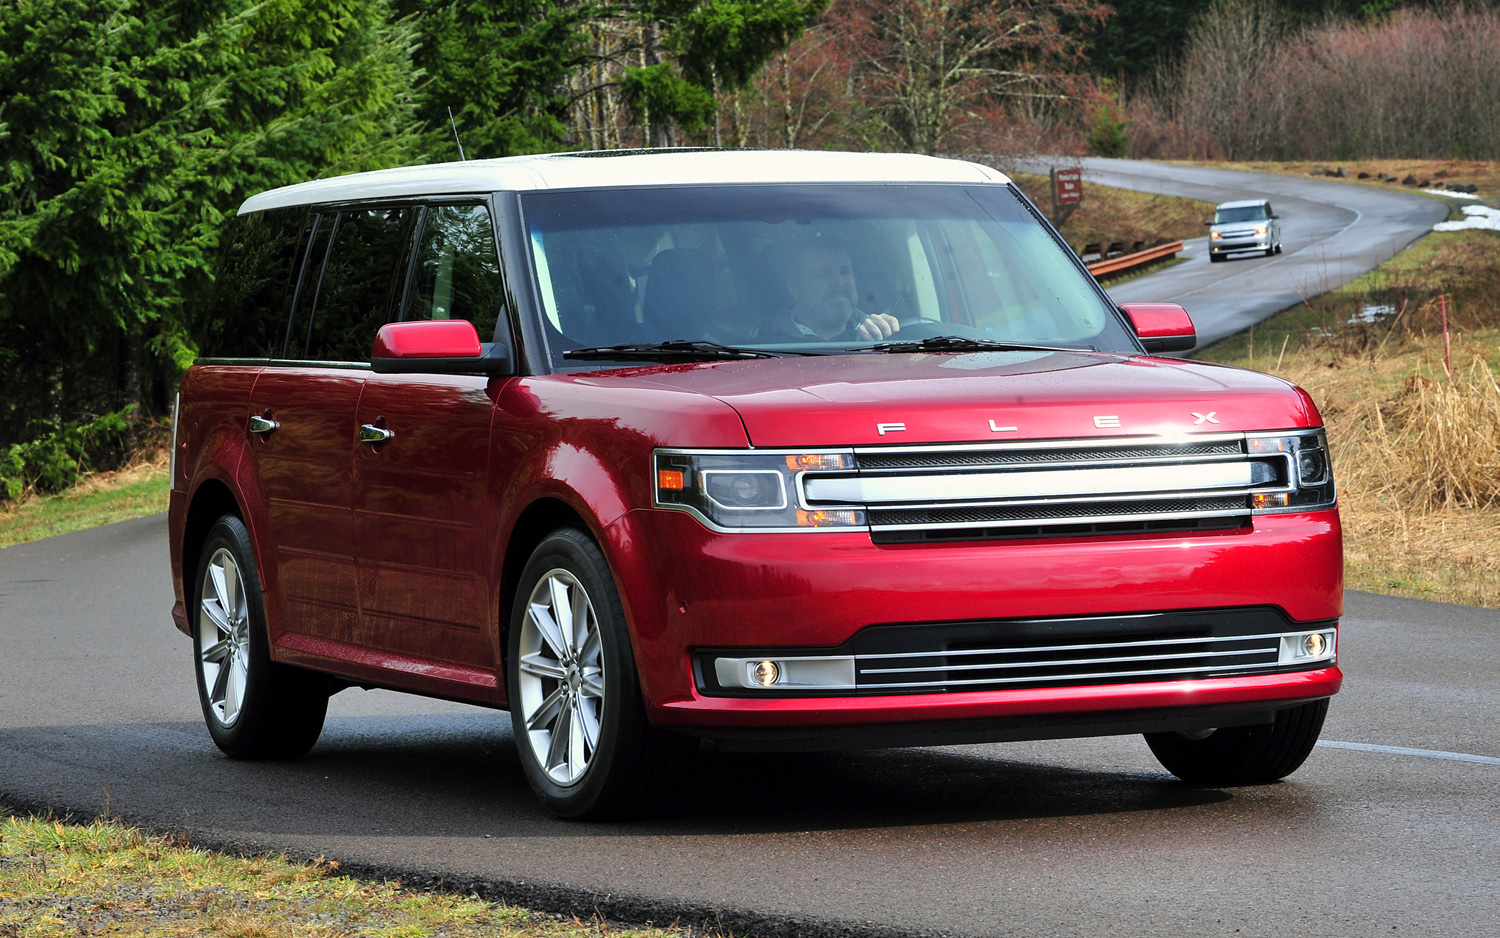 Ford flex 2009 photo - 9